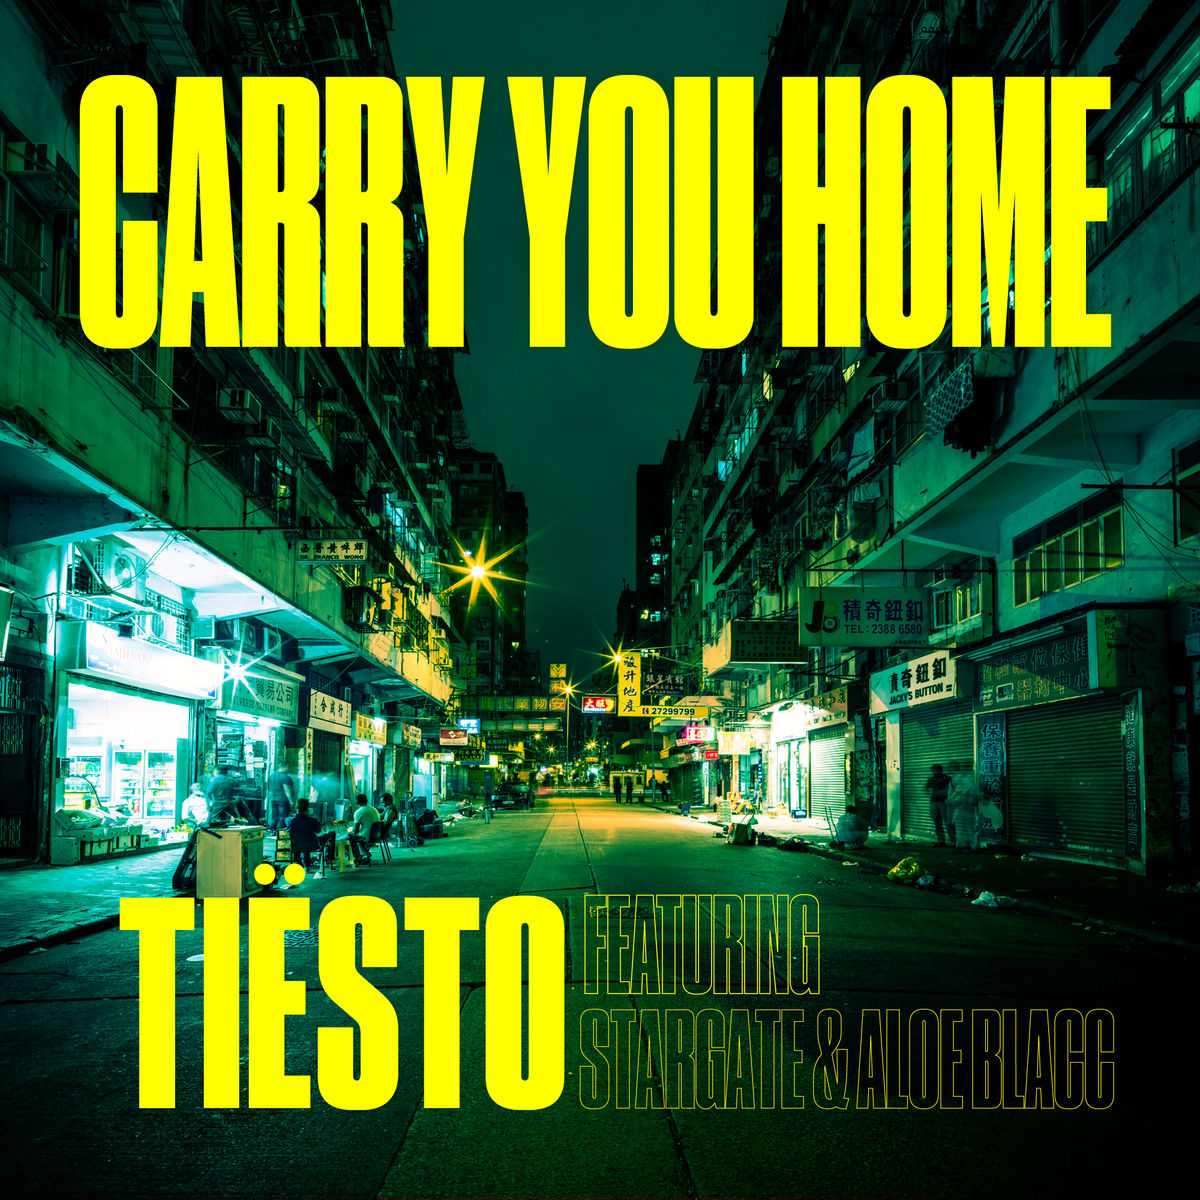 TIËSTO FEAT. STARGATE & ALOE BLACC - Carry You Home (Musical Freedom/Spinnin/Warner)